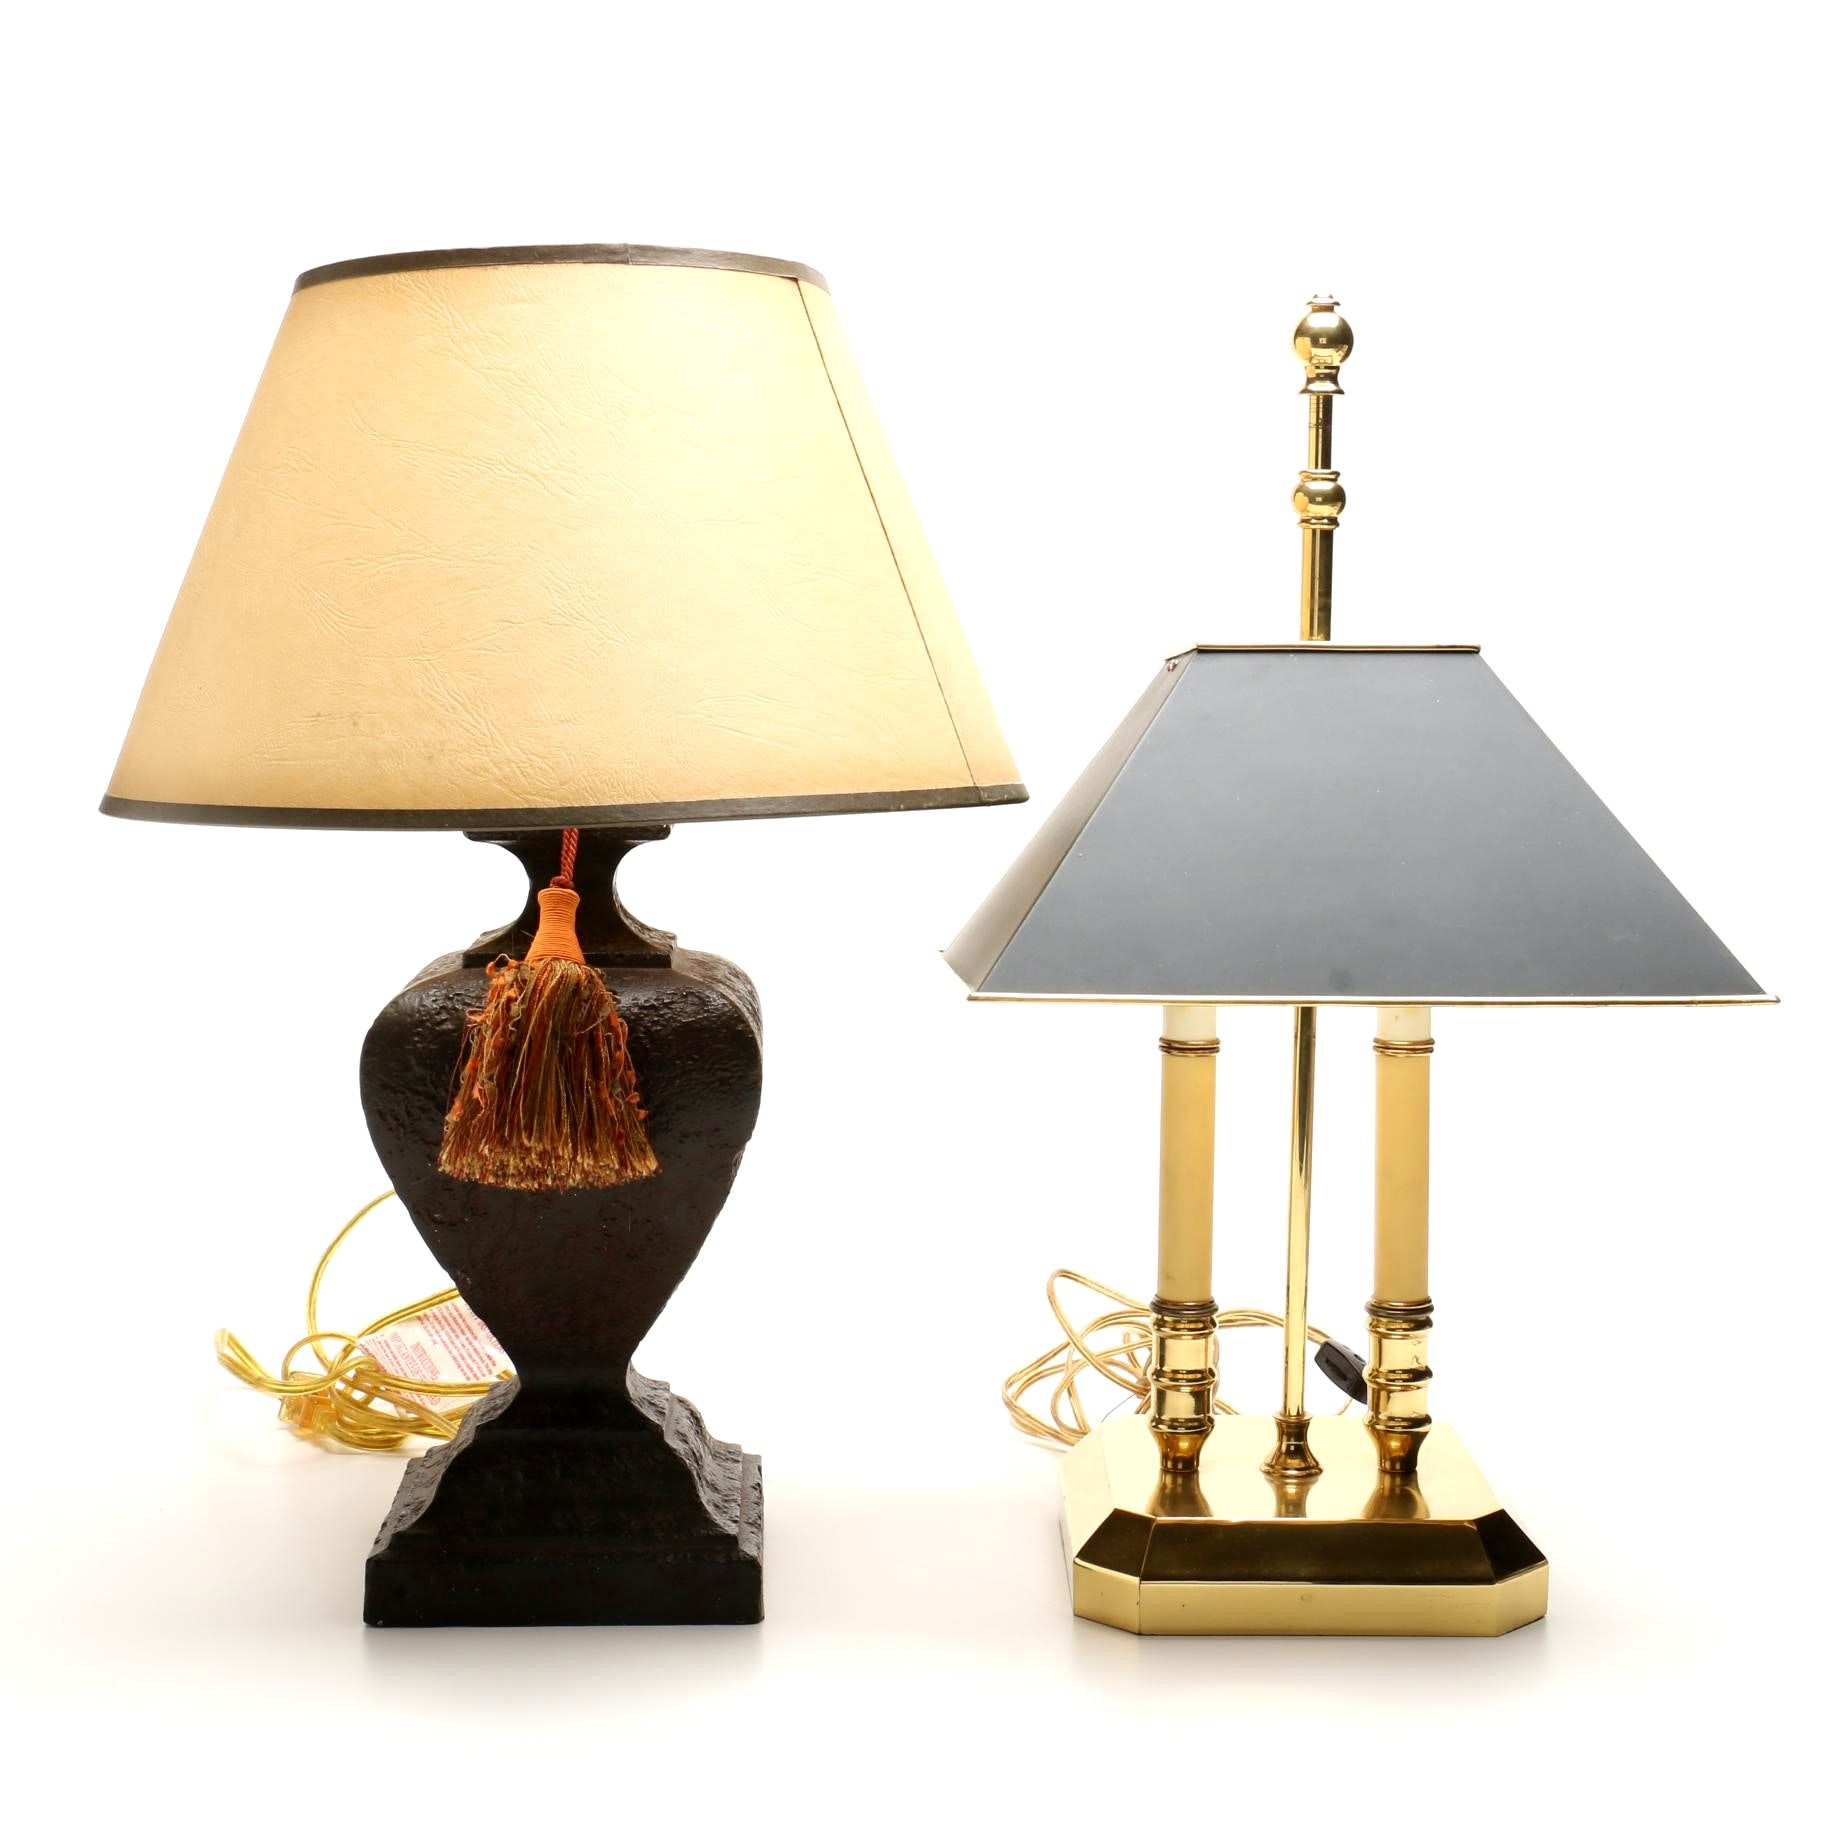 Bouillote Style Brass Office Lamp and Metal Decorative Table Lamp